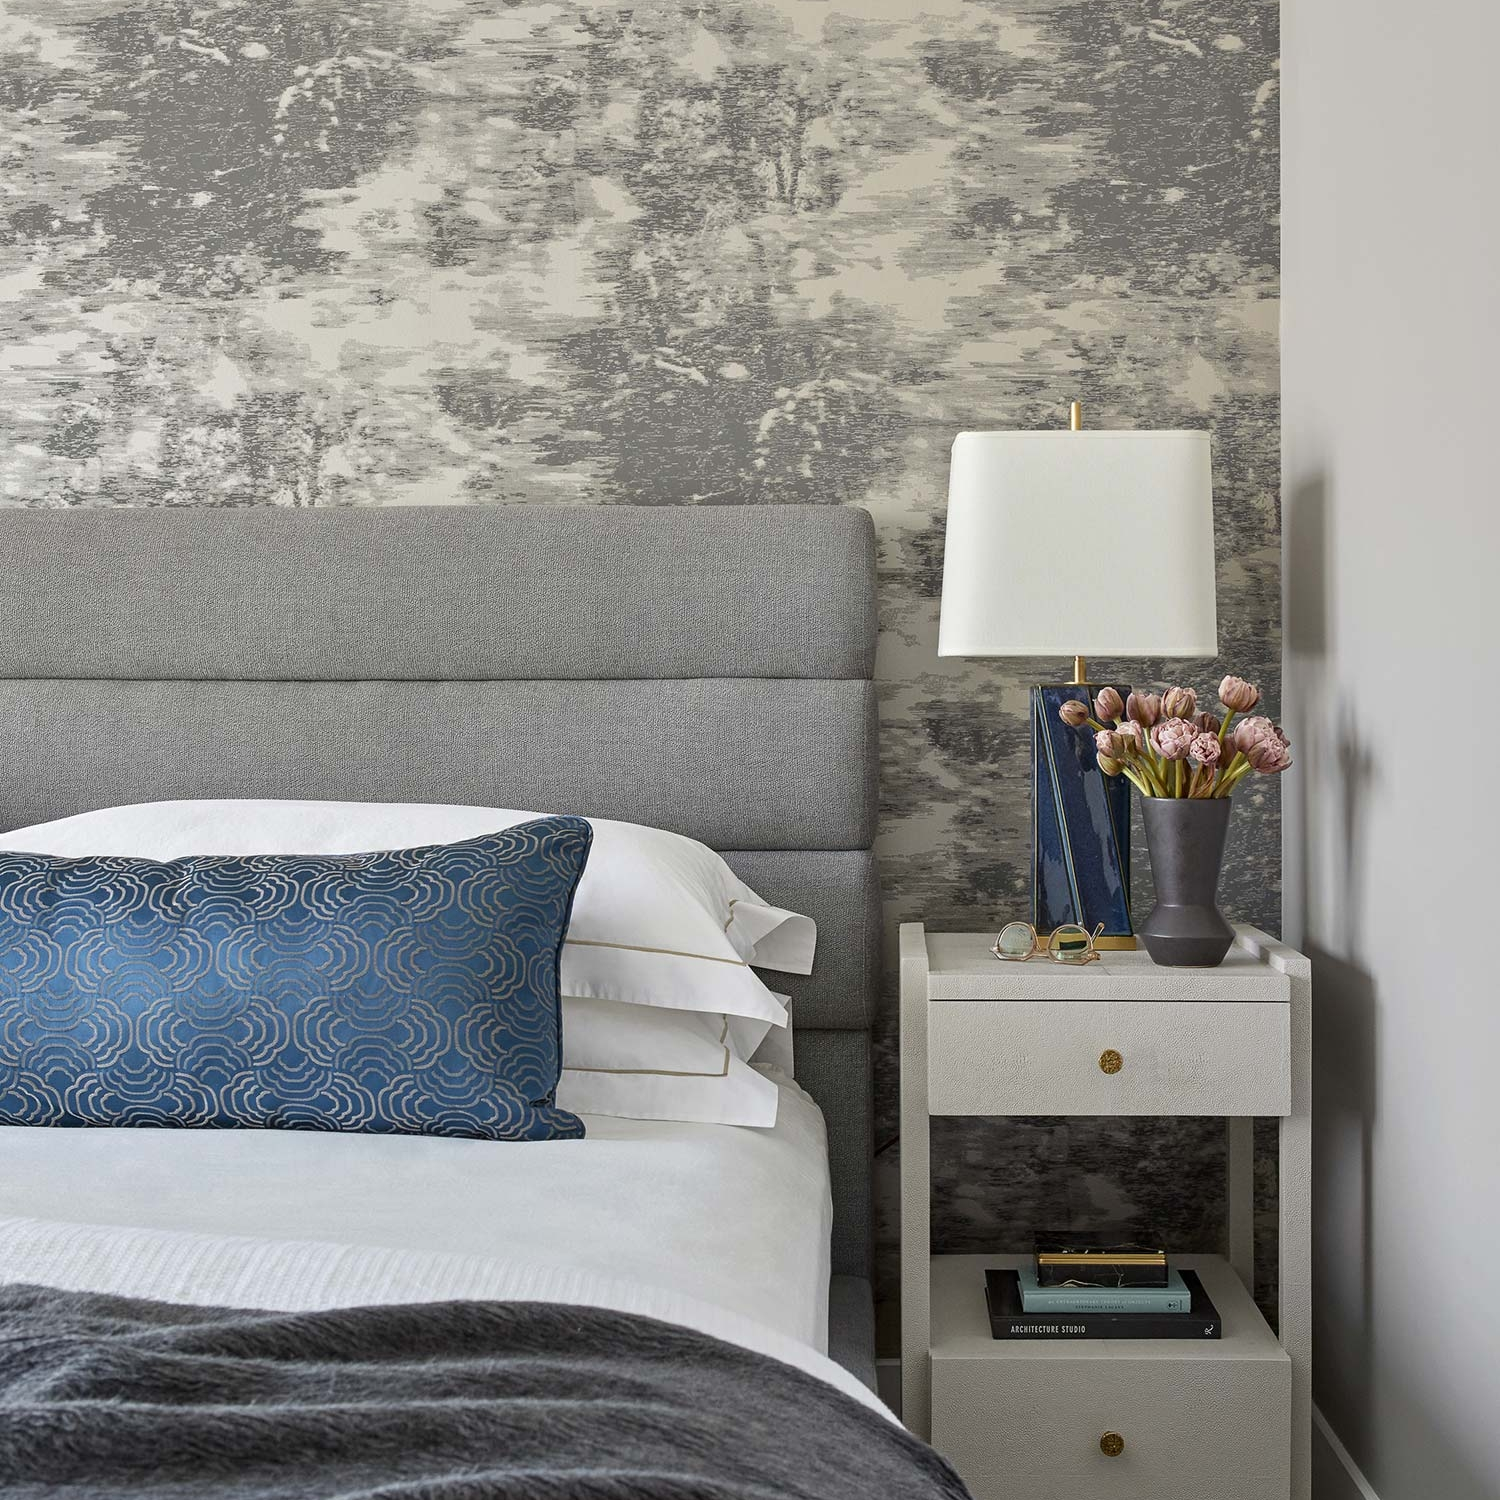 Master bedroom interior design in a New York apartment by Darci Hether